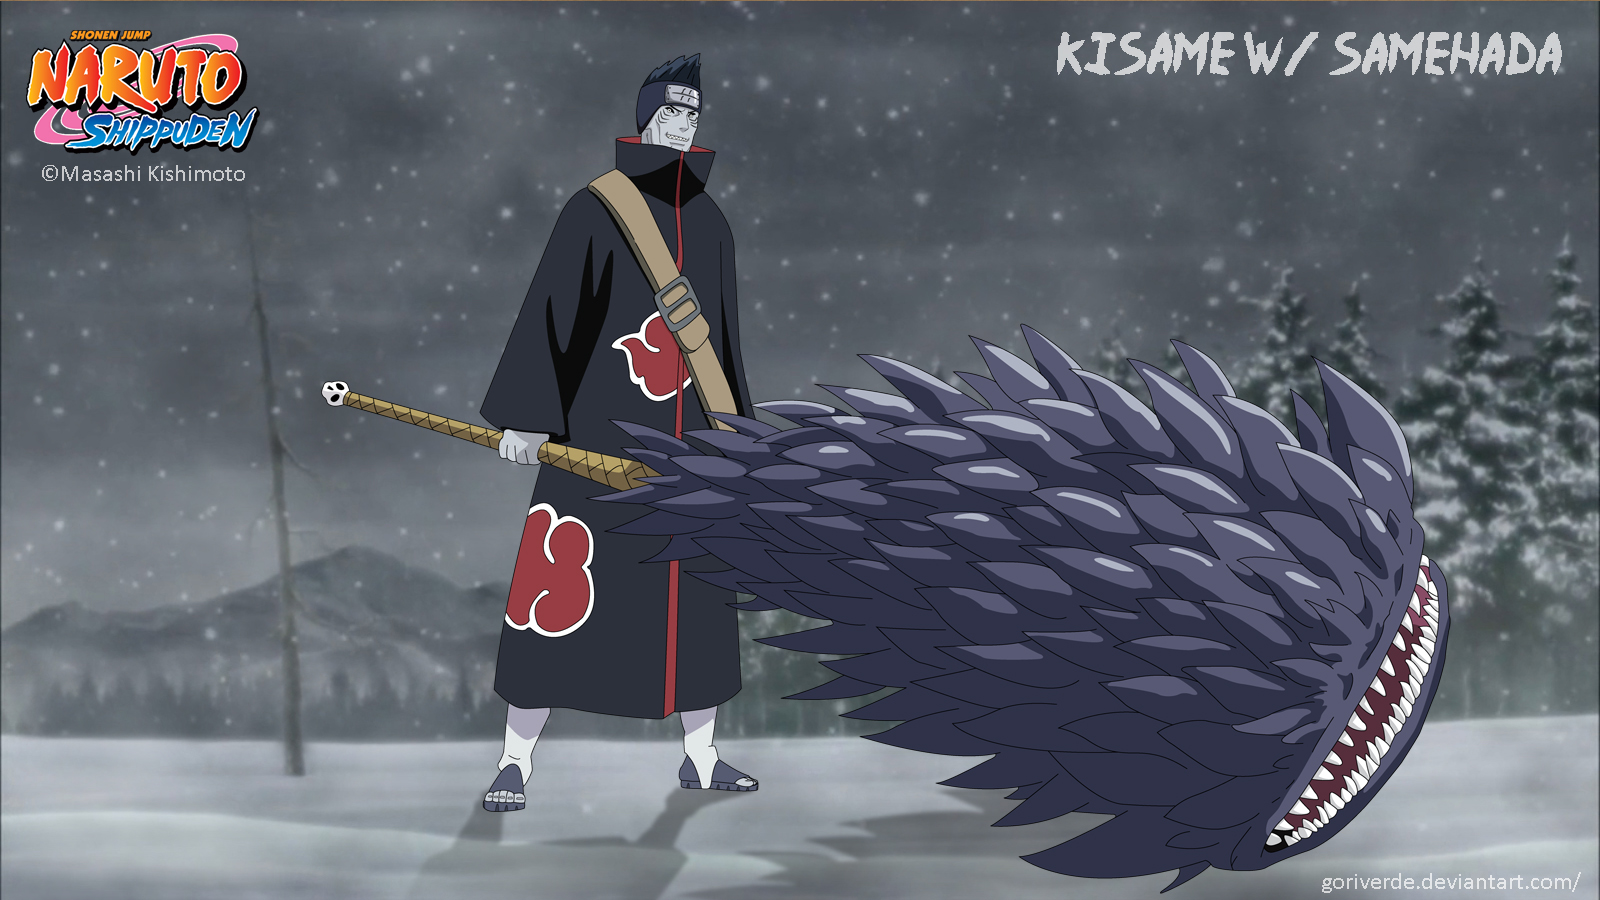 Kisame with Samehada by goriverde on DeviantArt